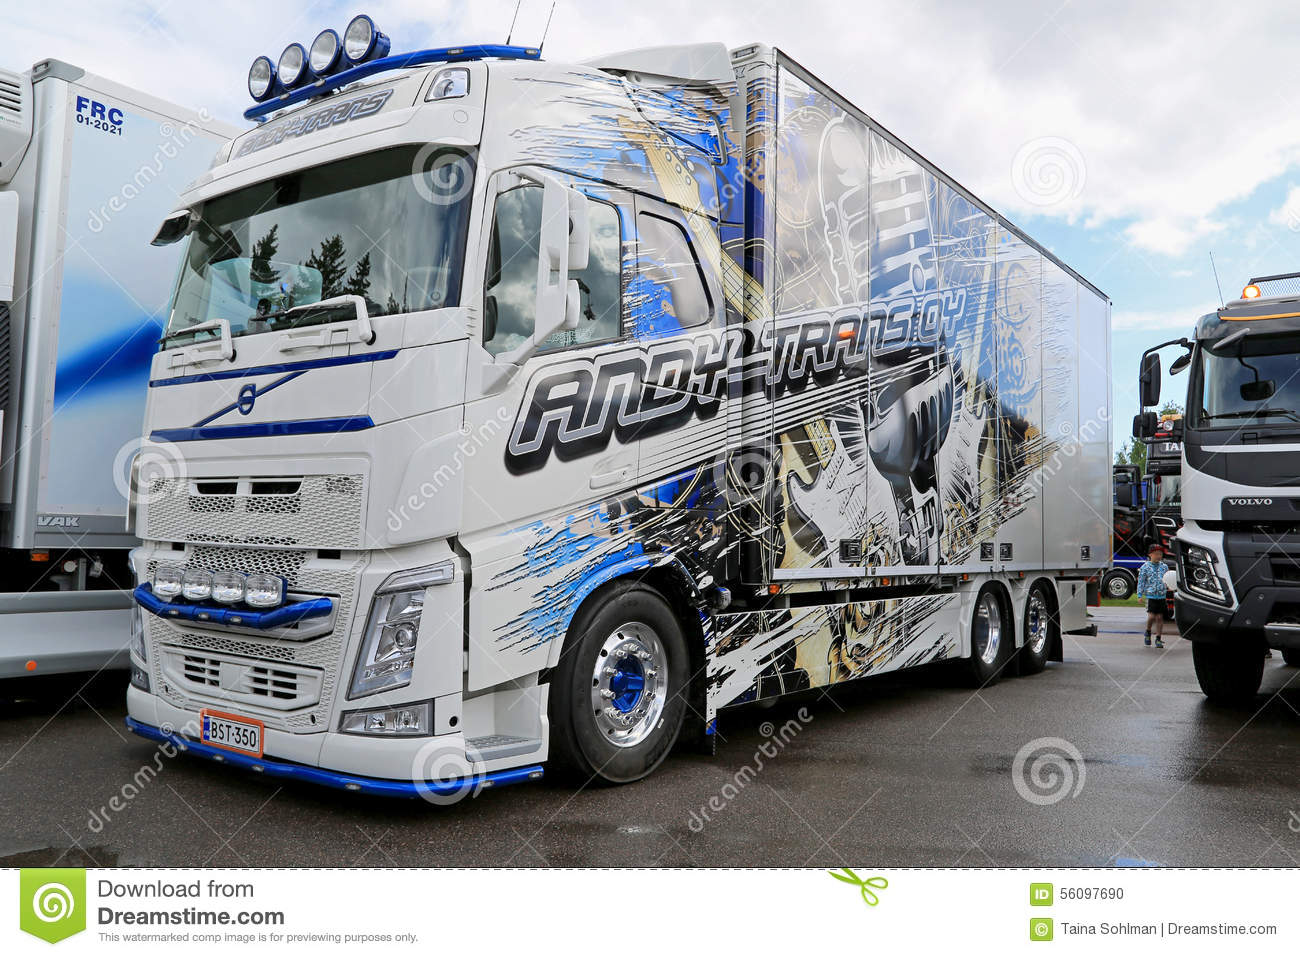 Volvo Truck Of Andy Trans Oy At Riverside Truck Meeting Editorial Image - Image: 56097690